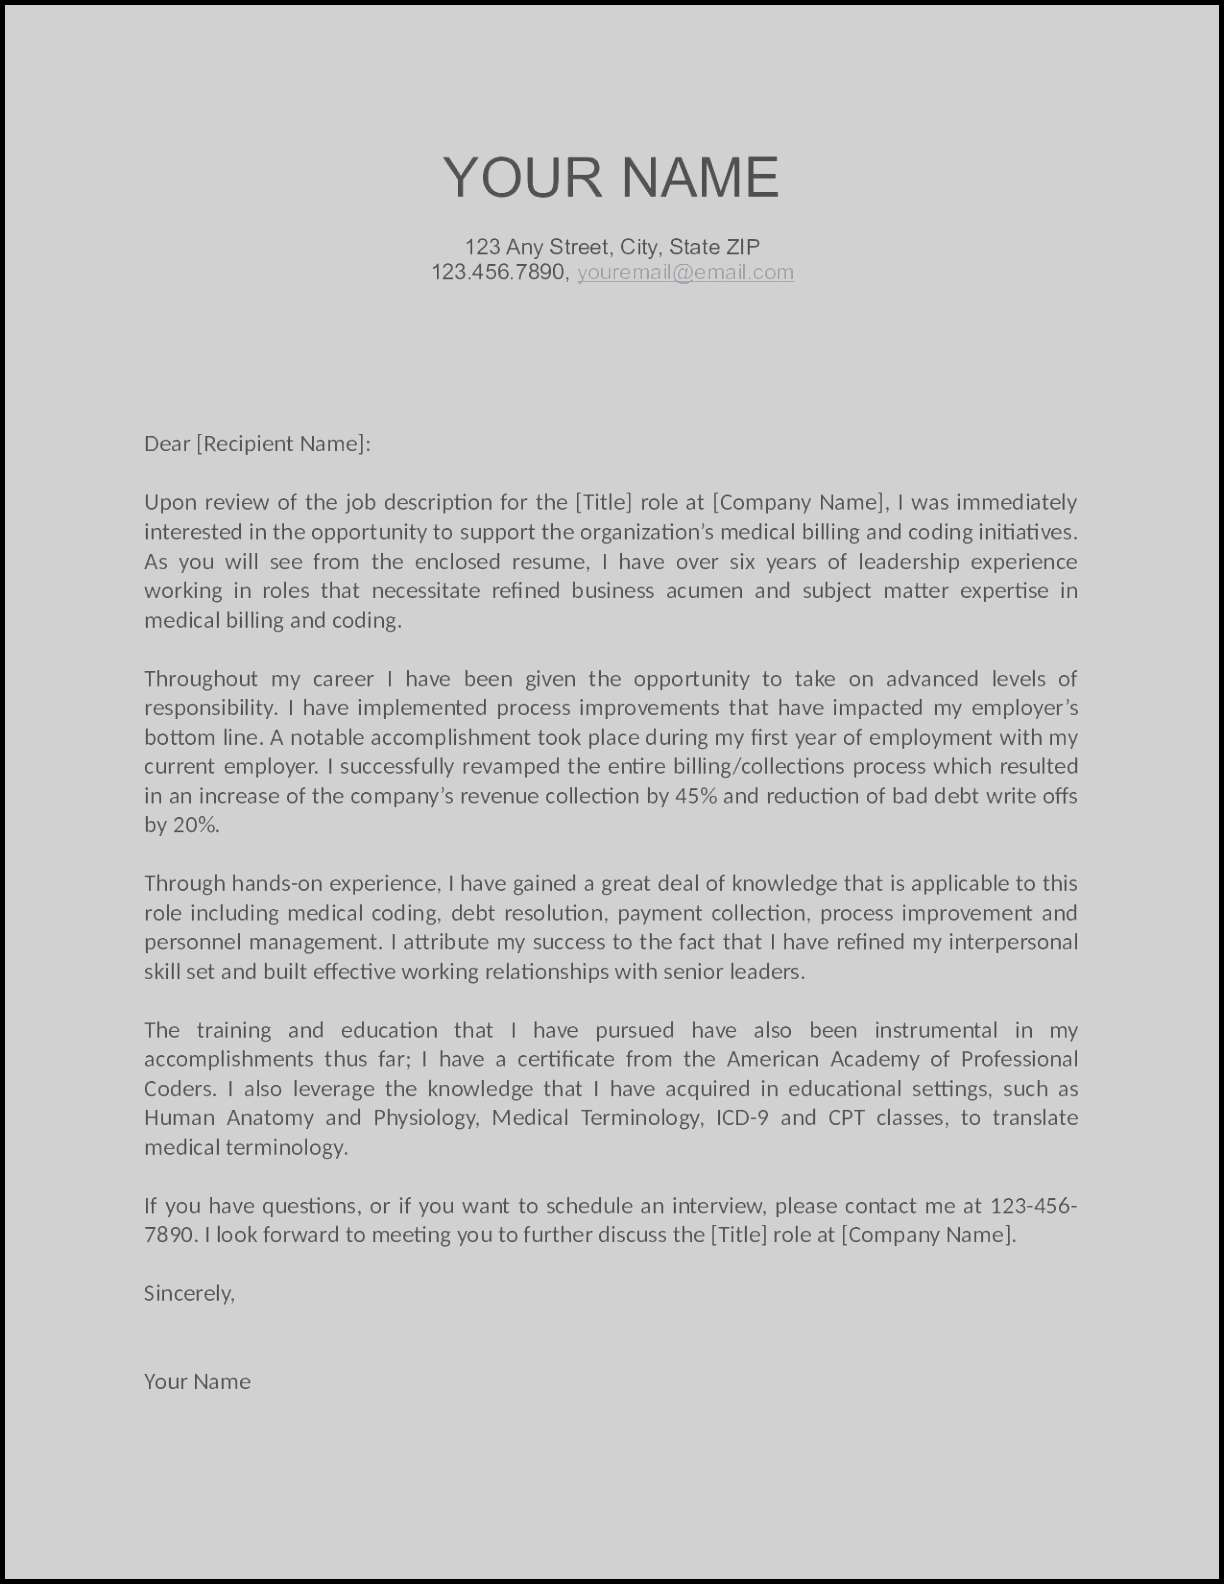 Modern Resume Cover Letter Template - Resume with Cover Letter Template Word Introduction Letter Template